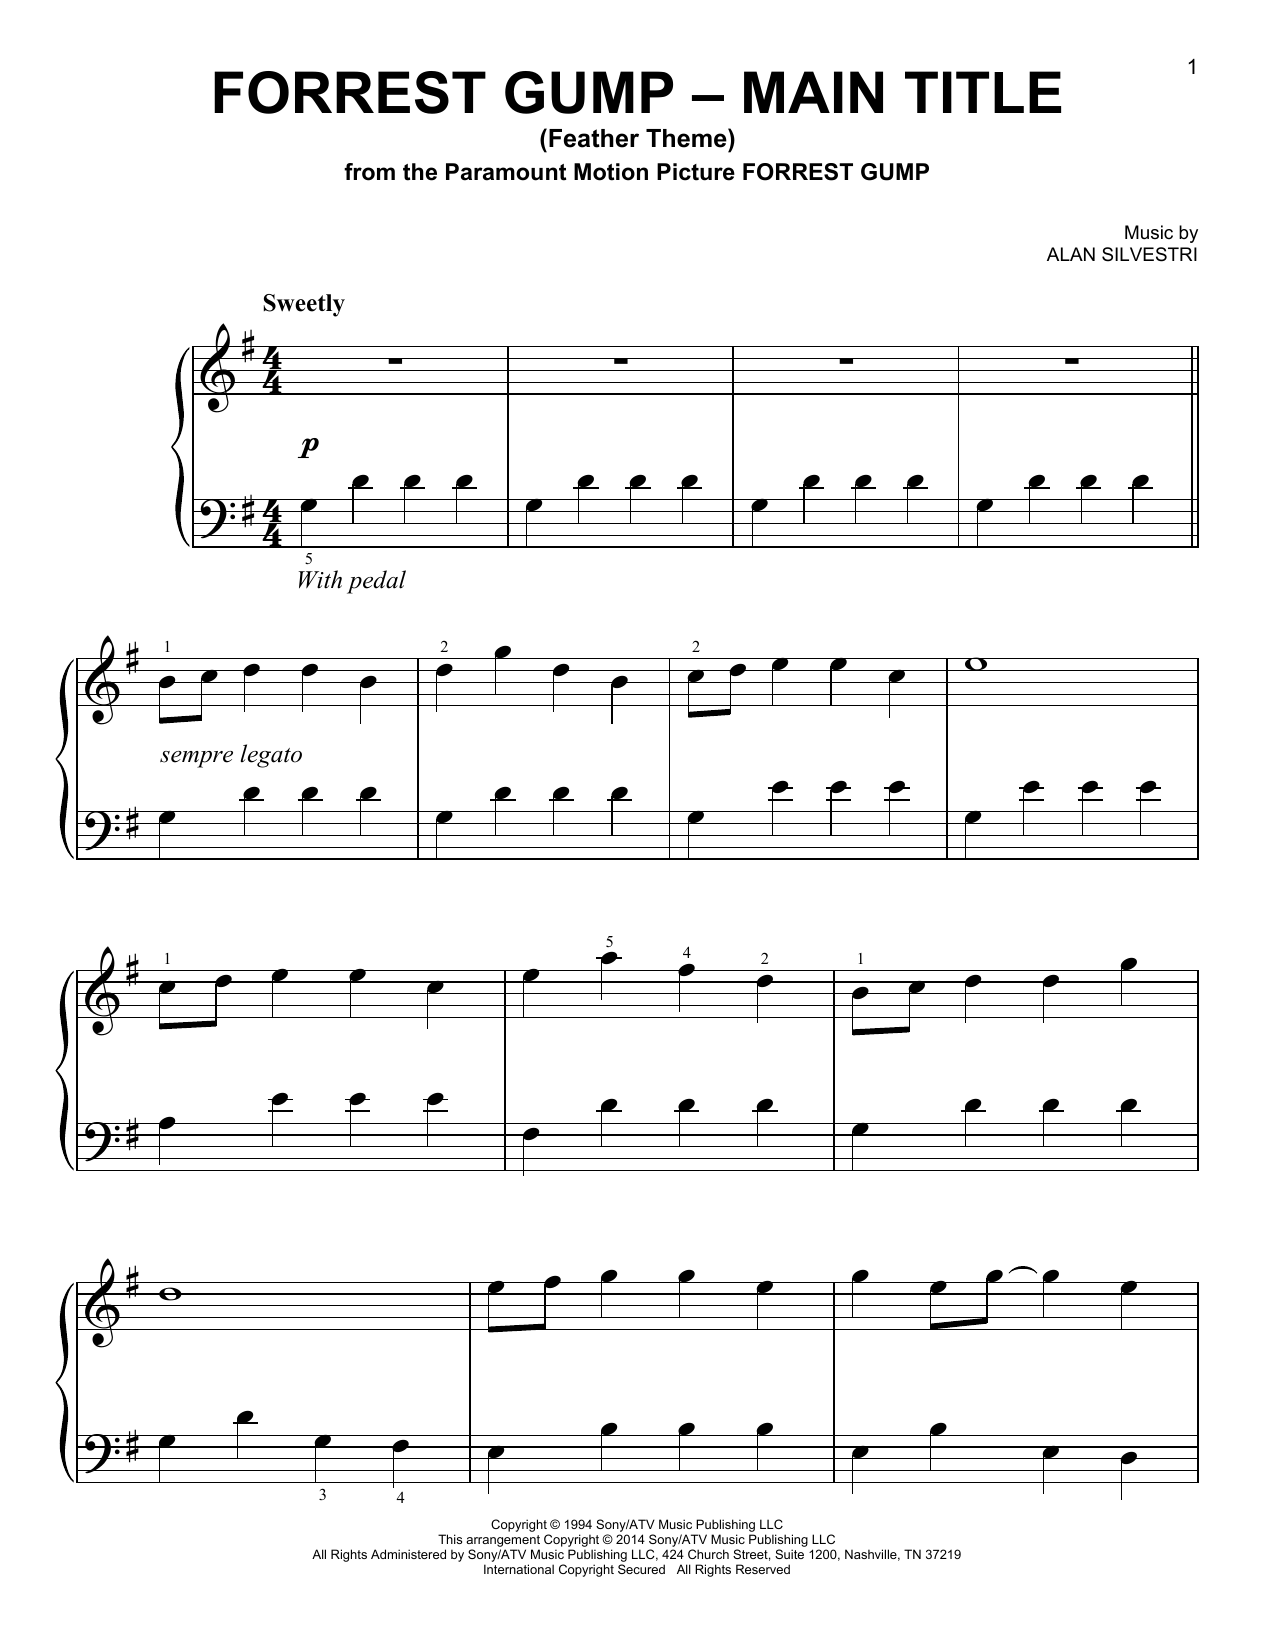 Alan Silvestri Forrest Gump - Main Title (Feather Theme) sheet music preview music notes and score for Easy Guitar Tab including 3 page(s)